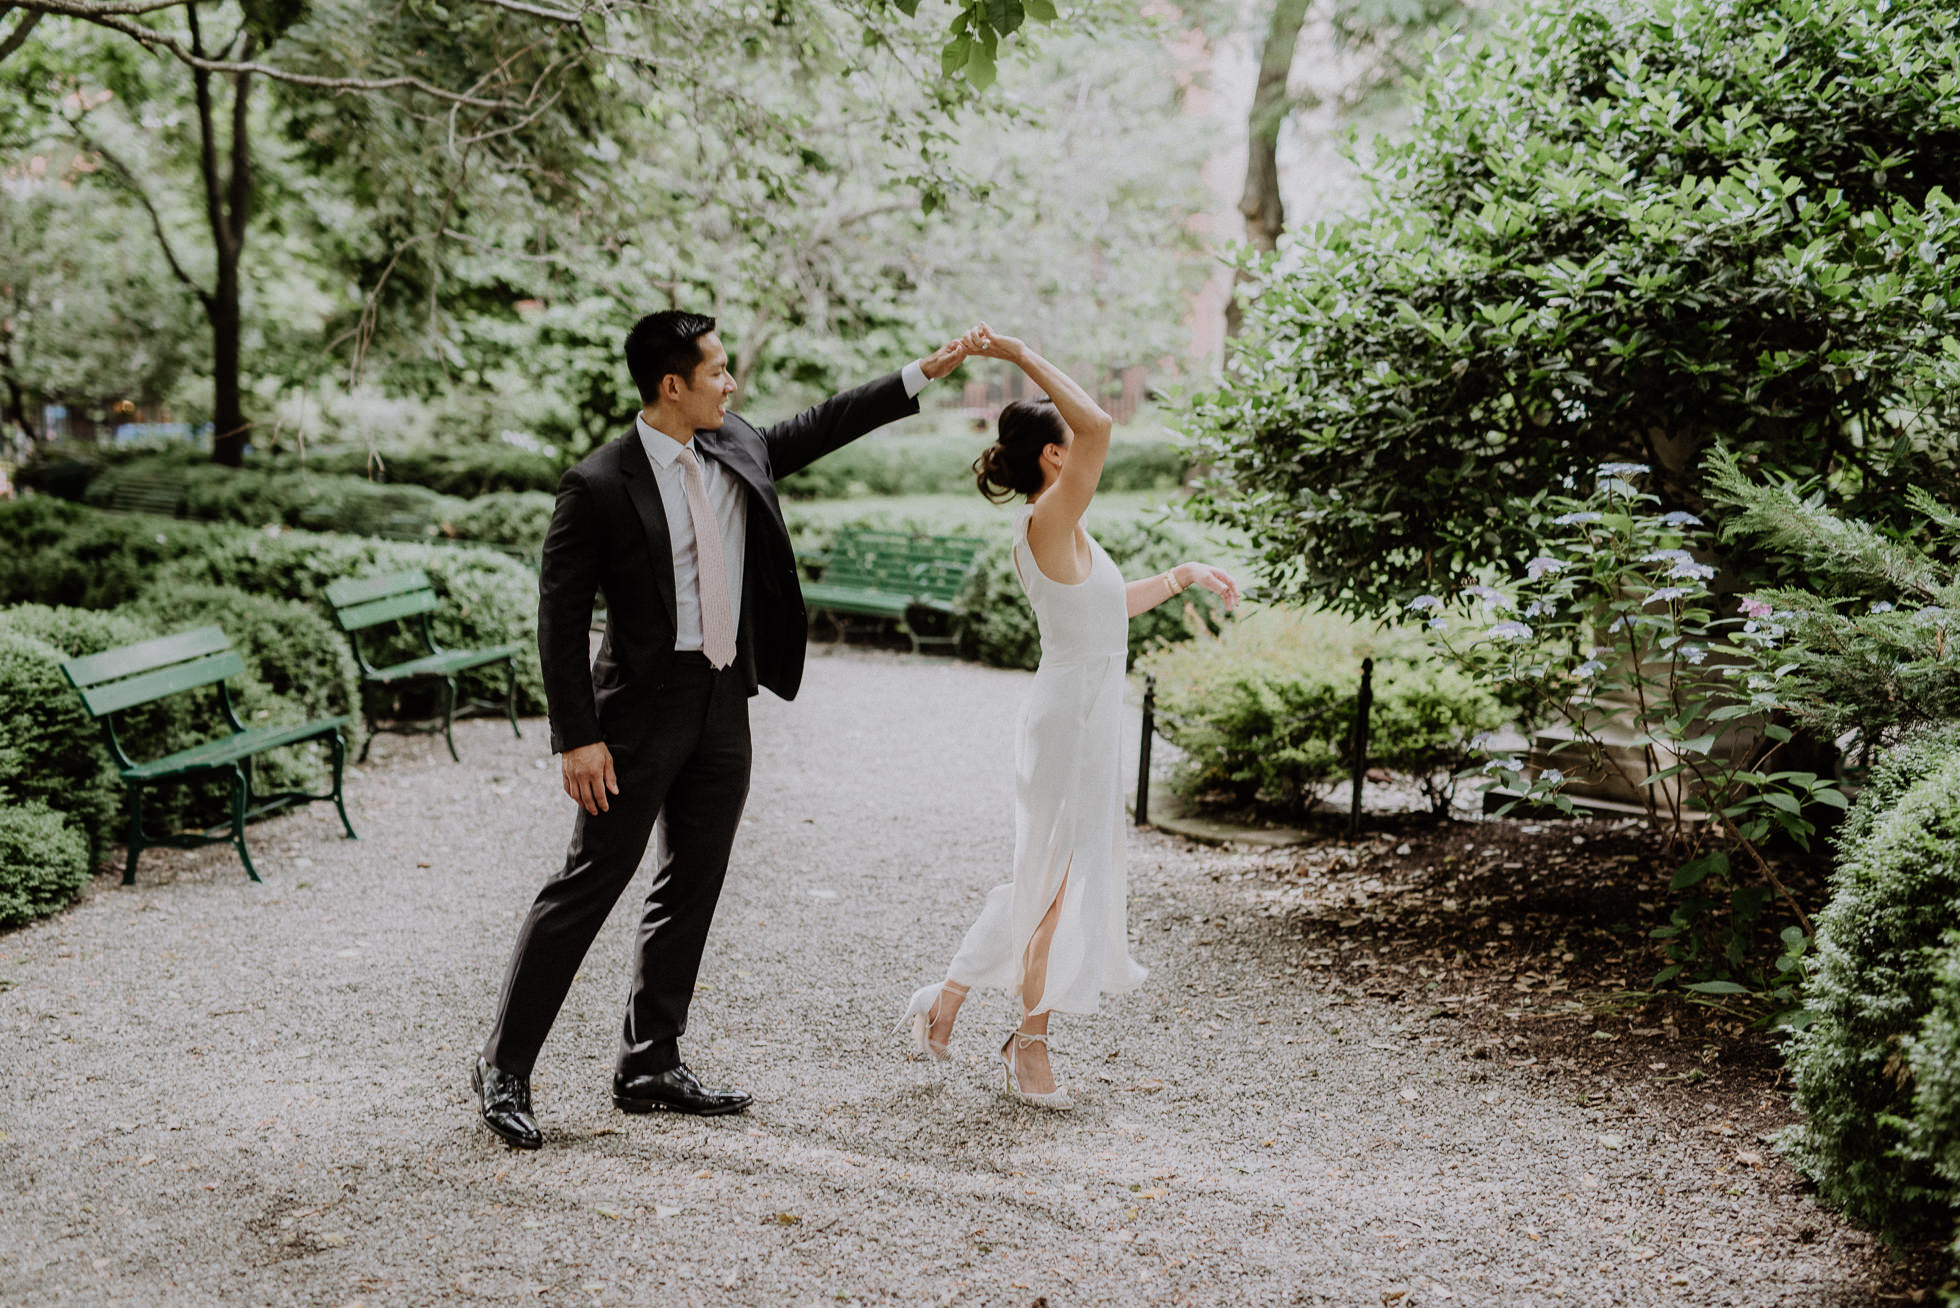 Gramercy Park wedding ceremony